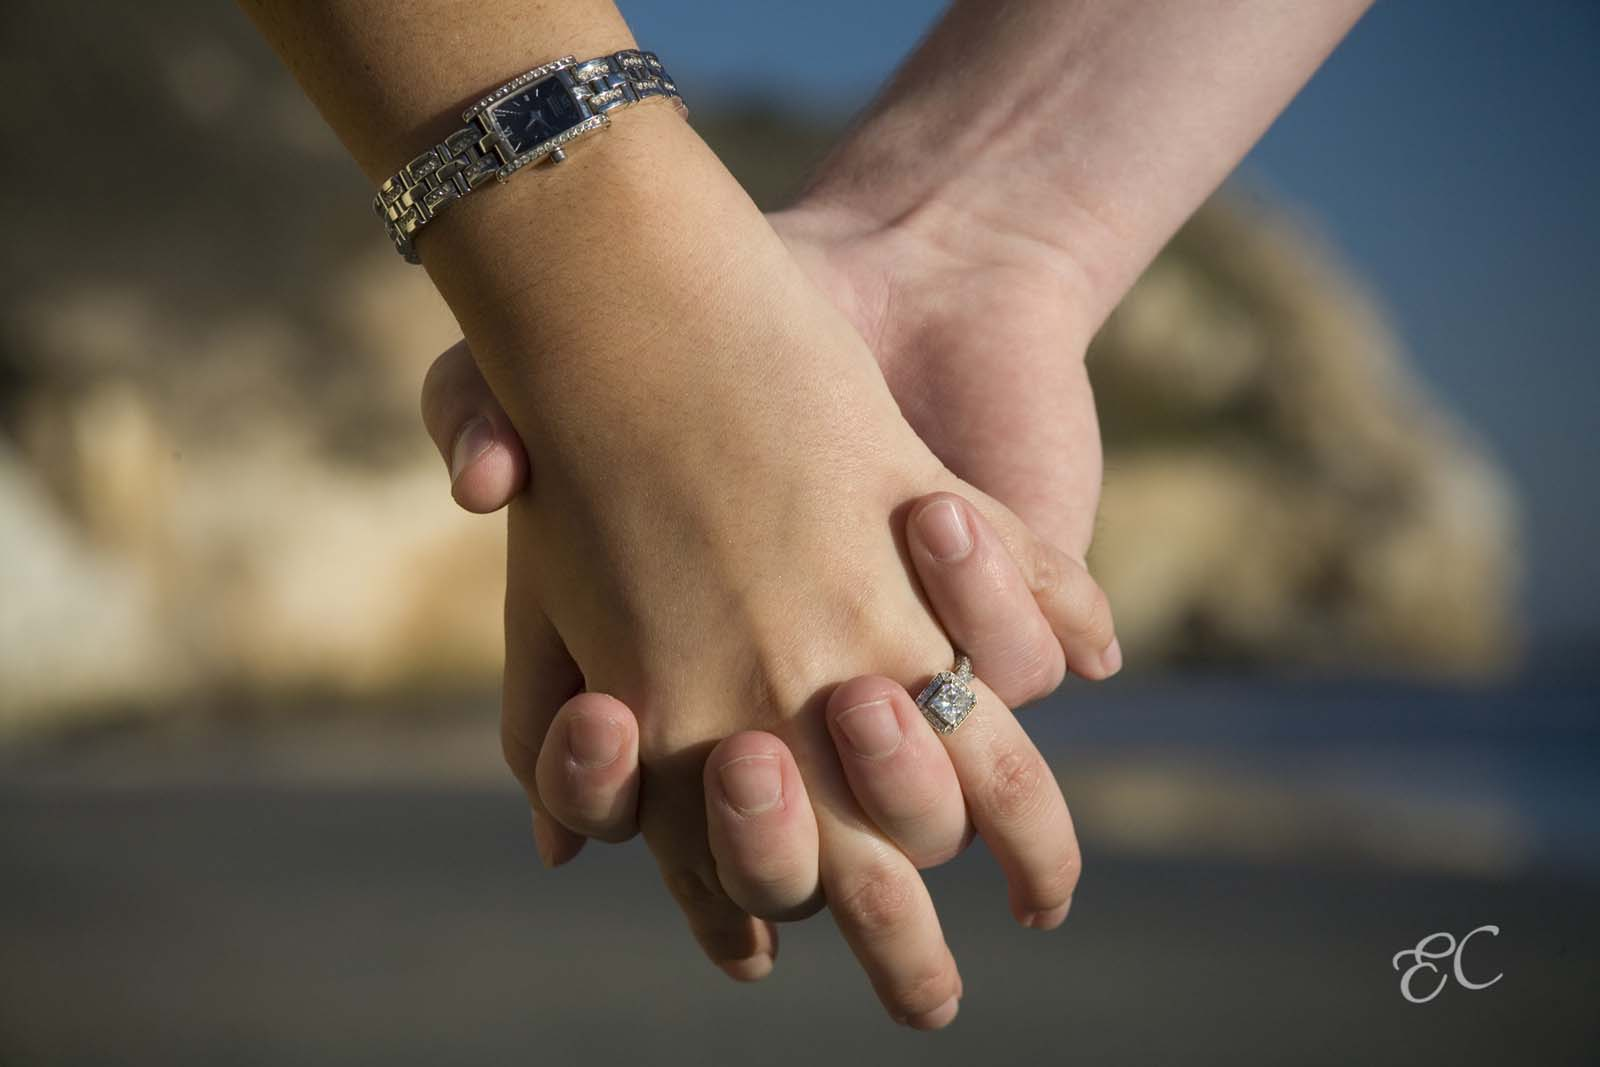 holding hands showing engagement ring walking on beach